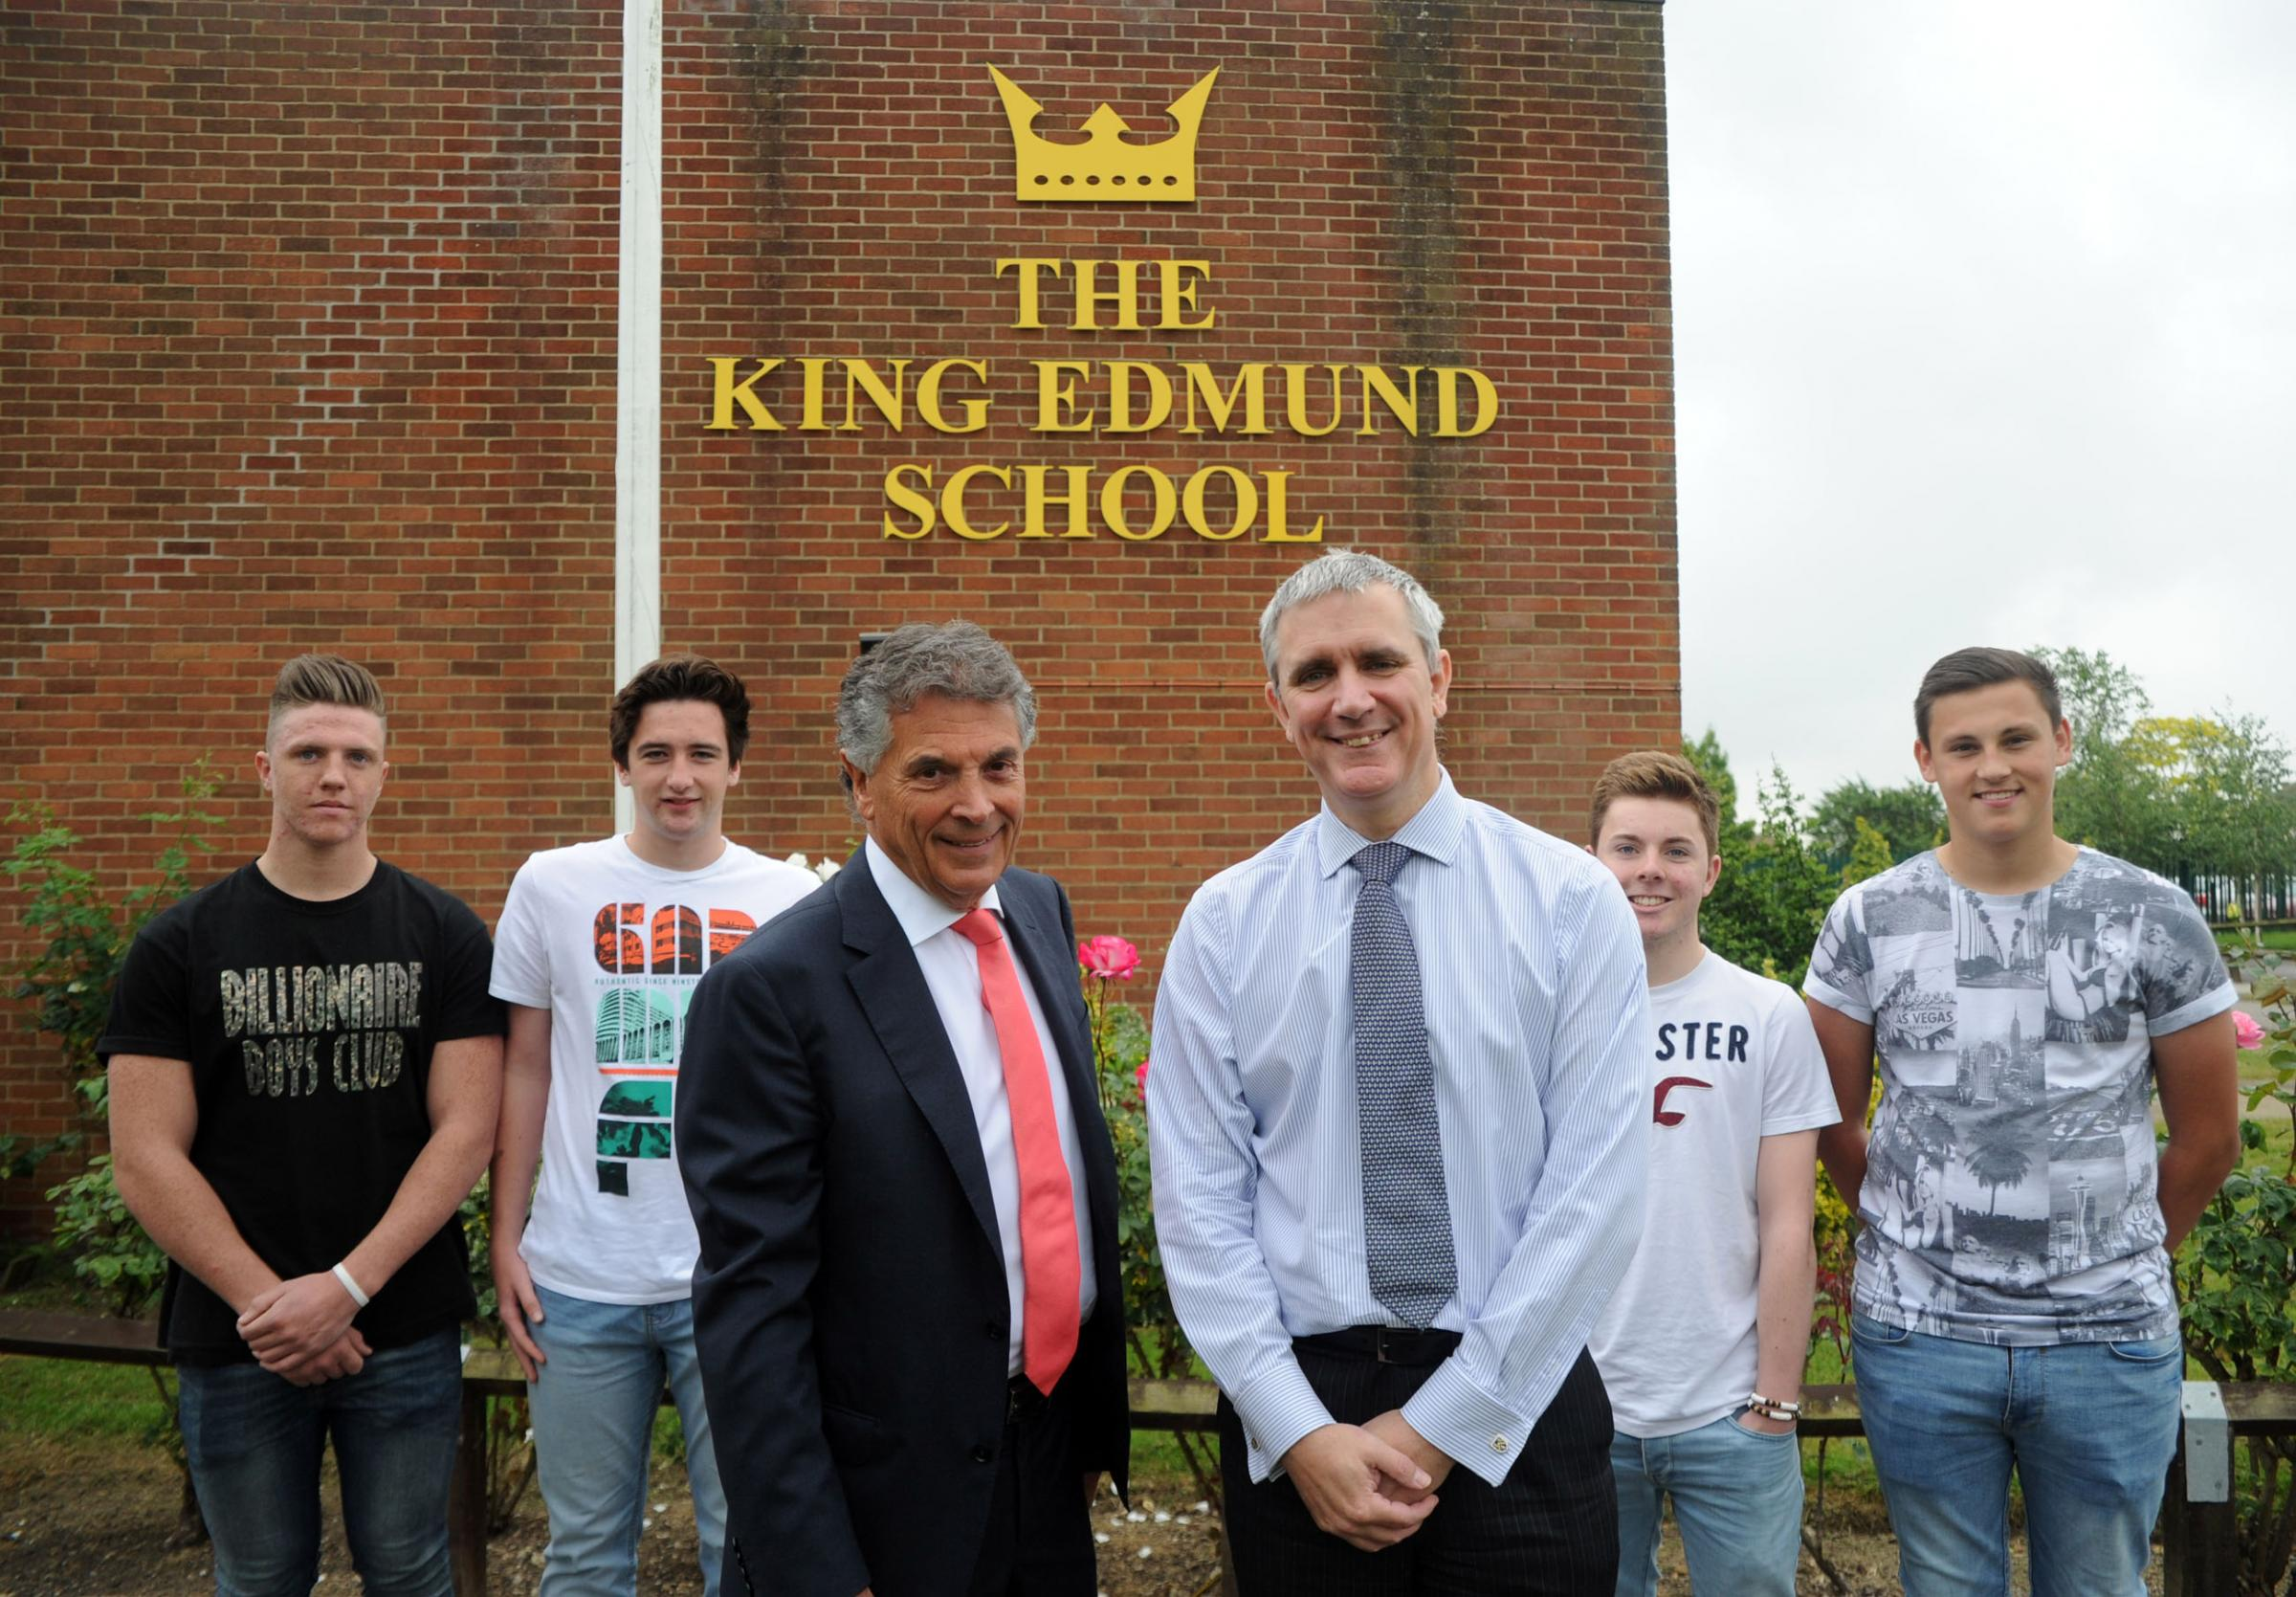 Question time – David Dein, centre left, with headteacher Jonathan Osborn and pupils Harry Heirons, Alex Bailey, Kieran Wilkinson and Ben Cleary